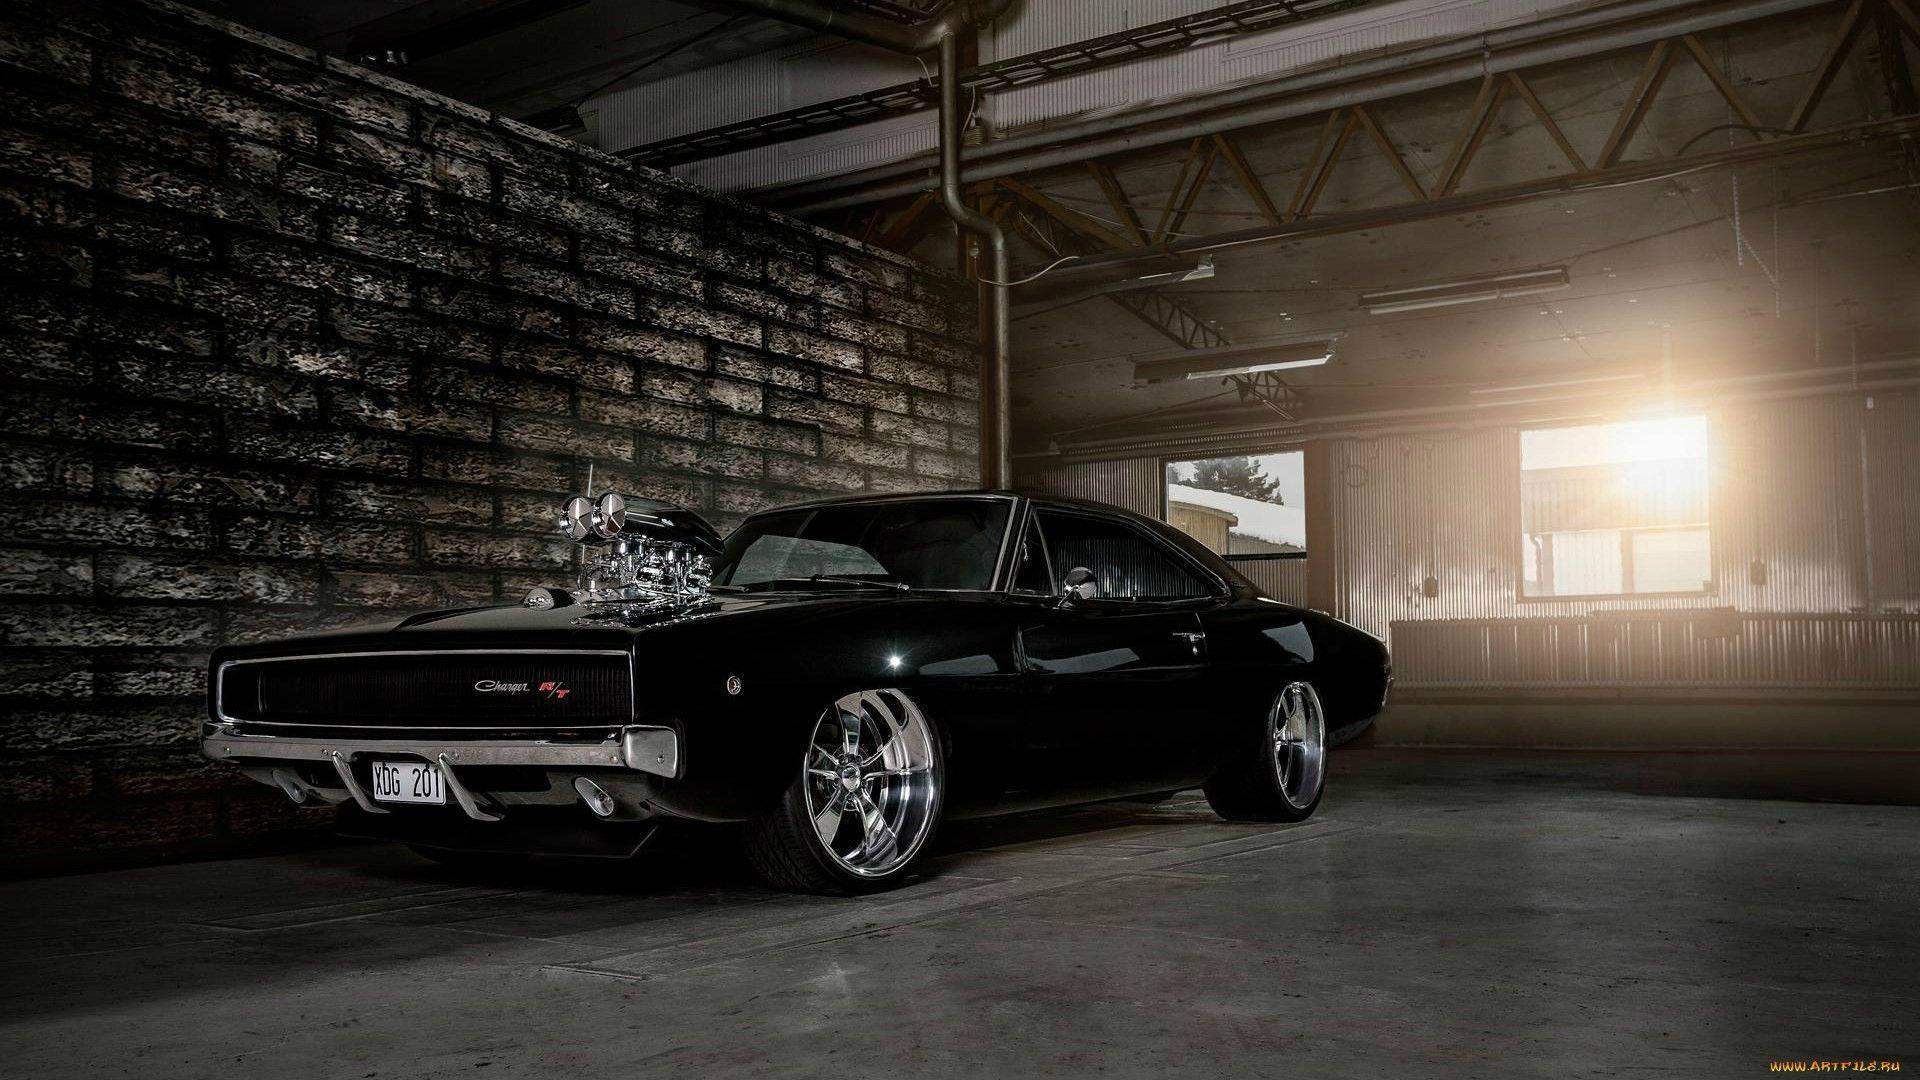 Vin Diesel Dodge Charger 1970 Blower HD Desktop